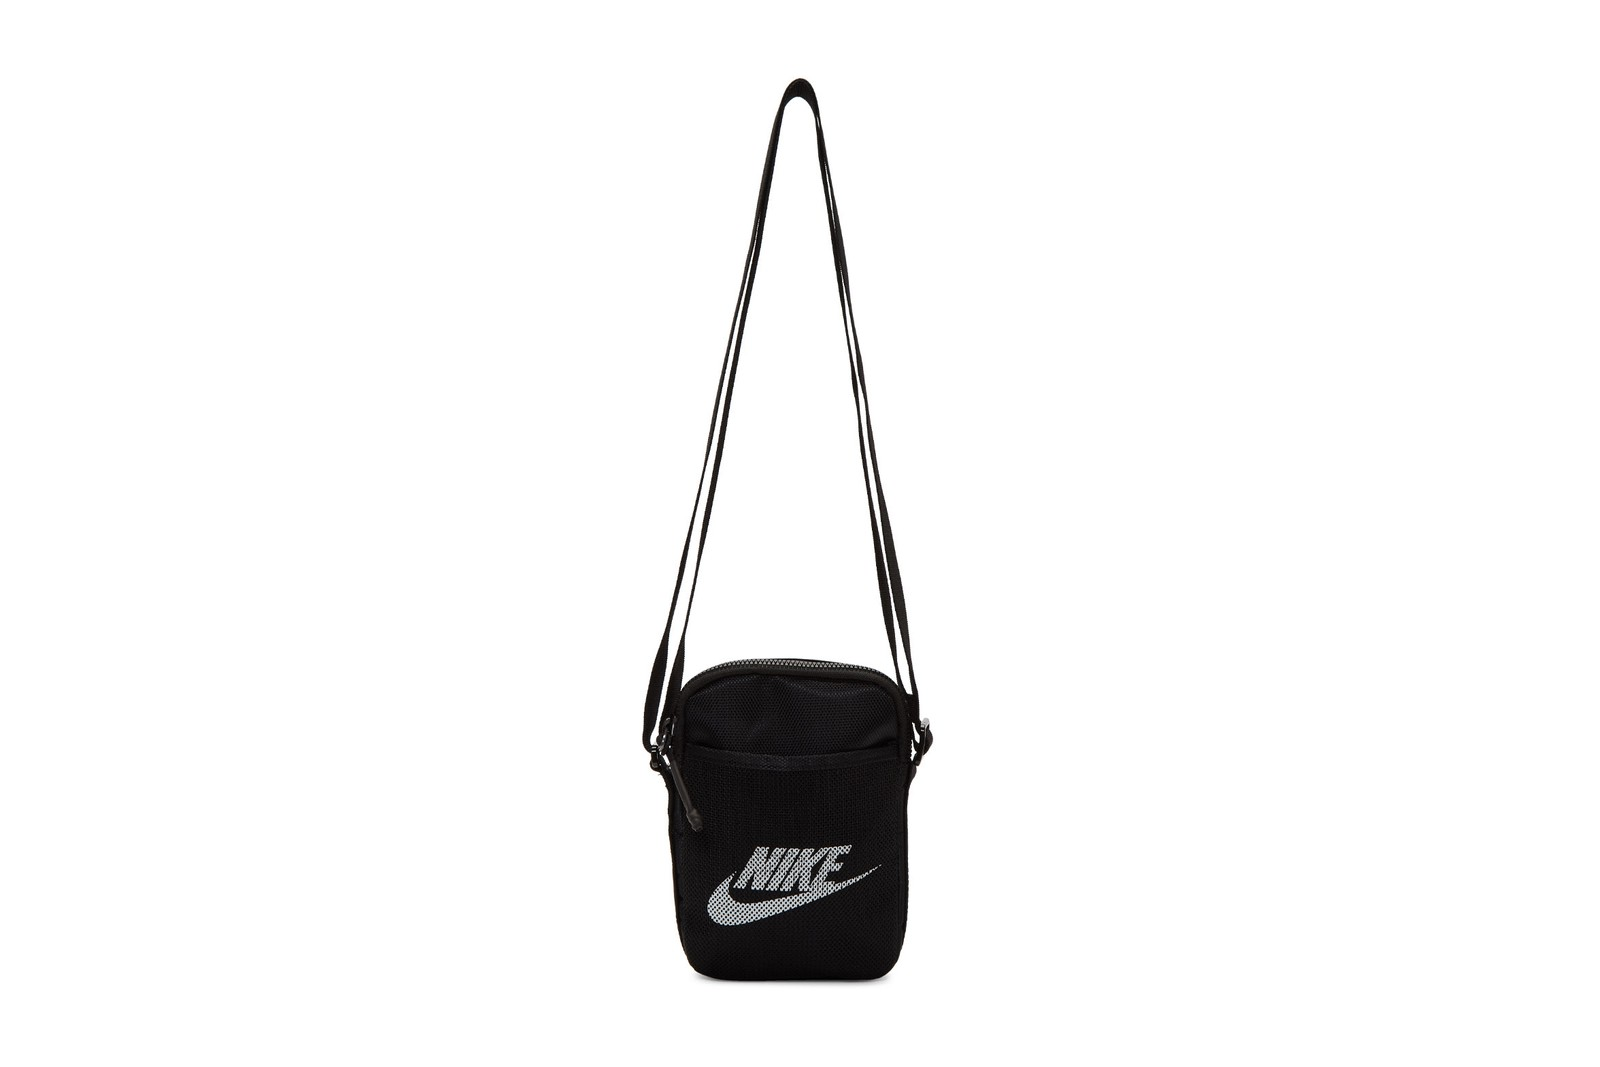 Fall/Winter Affordable Bags Accessories Totes Nike adidas Originals Champion Carhartt Stussy Opening Ceremony